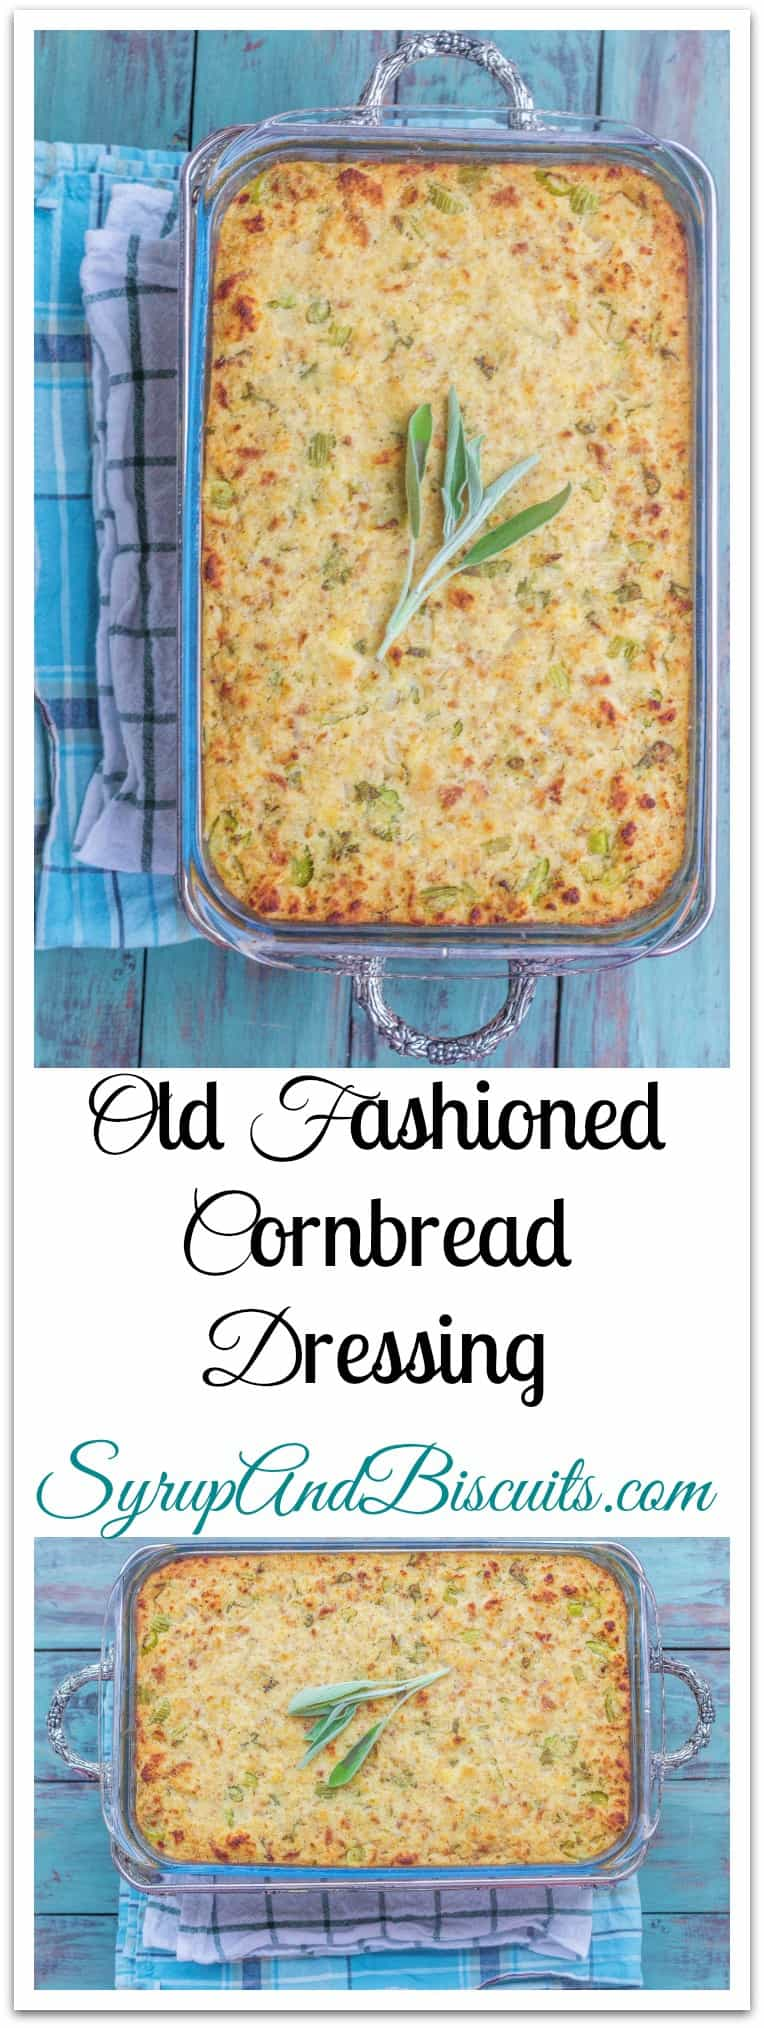 I think I might have figured out how to make Granny's Old Fashioned Cornbread Dressing even better. #Cornbread #Dressing